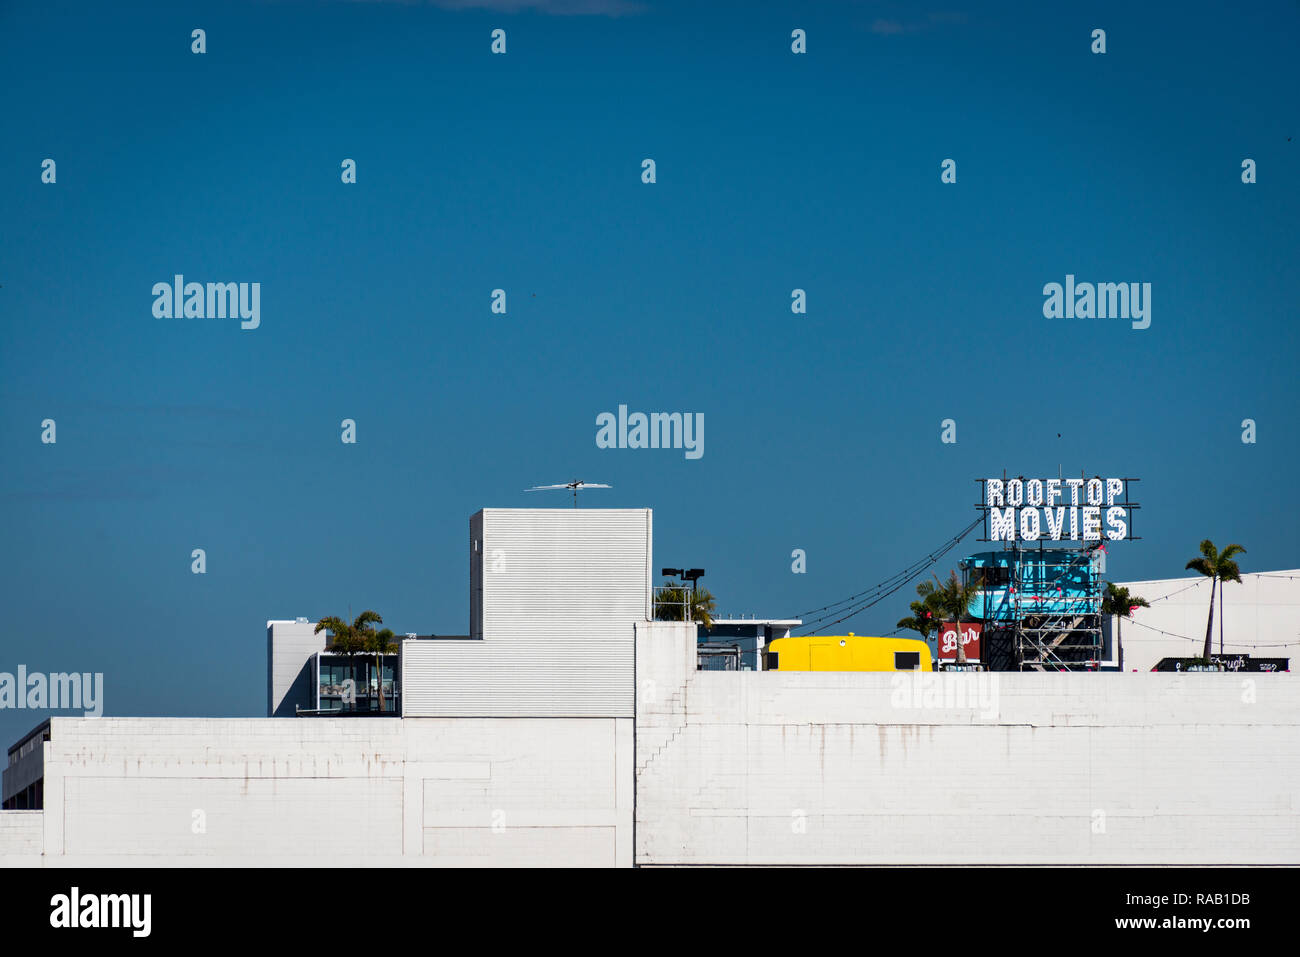 A sign for Rooftop Movies on a white concrete building against a vivid blue sky - Stock Image